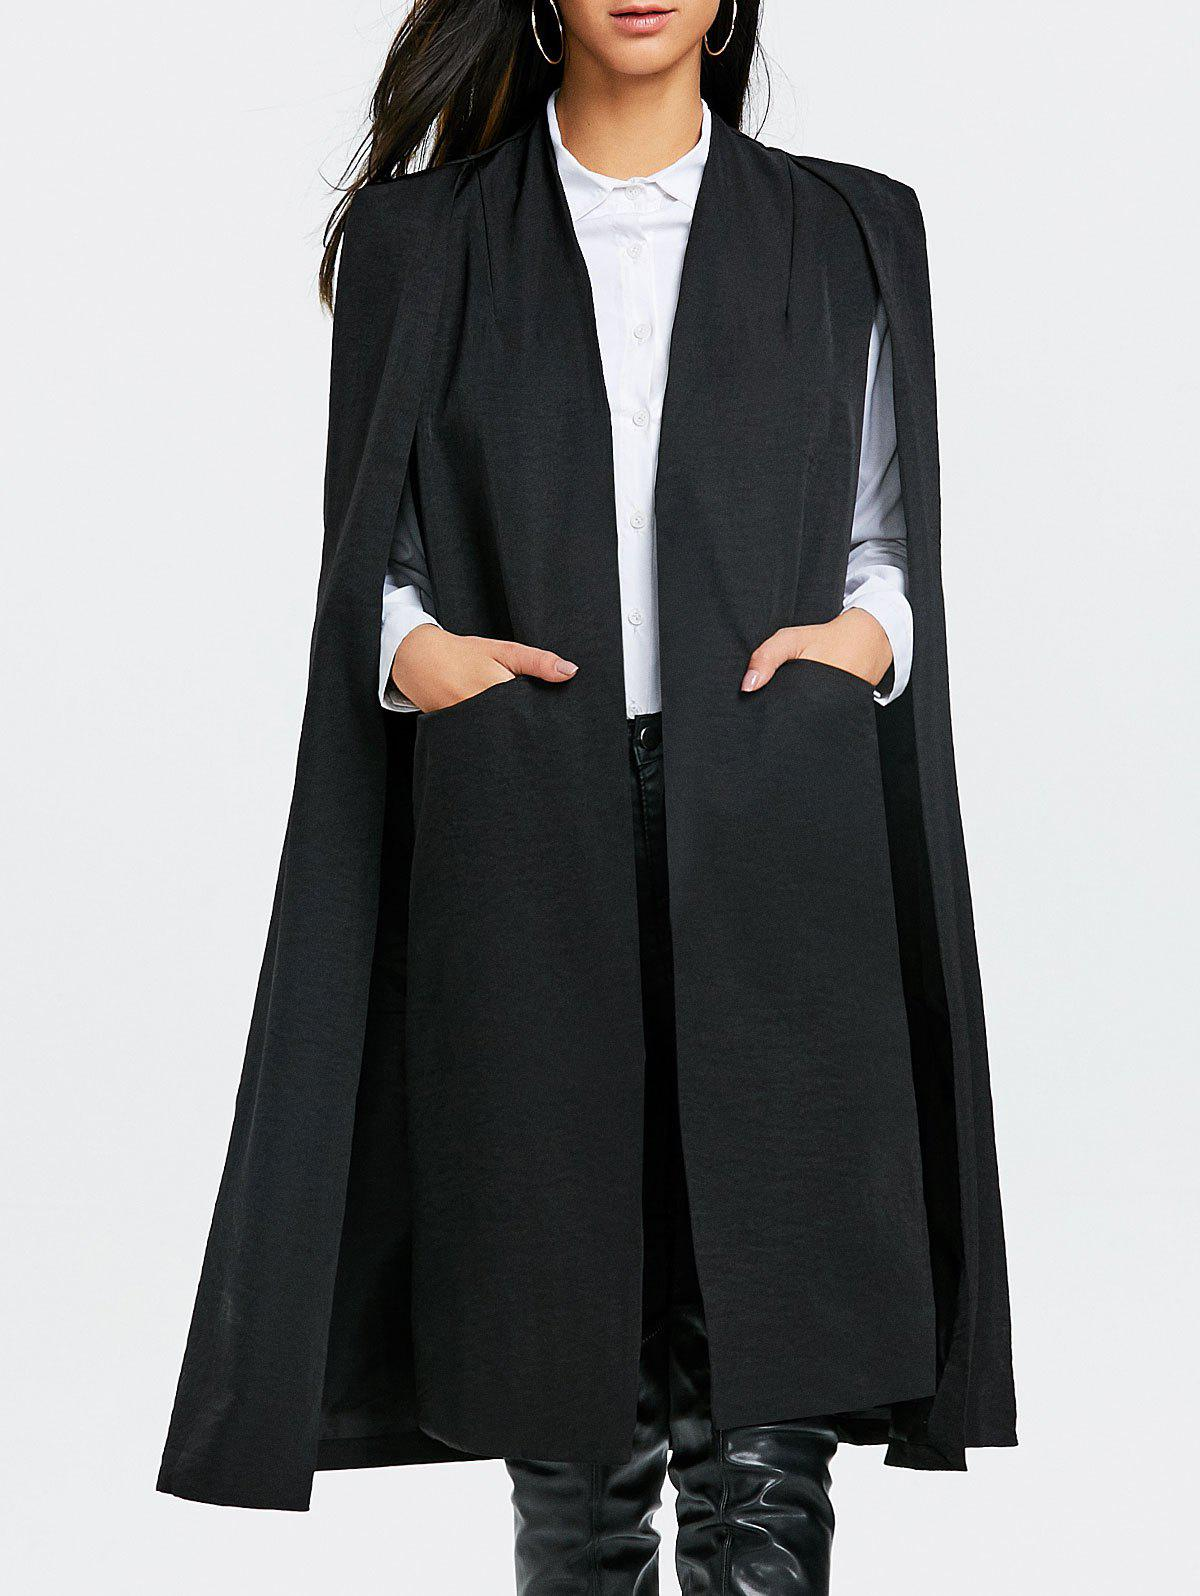 Slit Pocket Cape Longline Coat - BLACK S